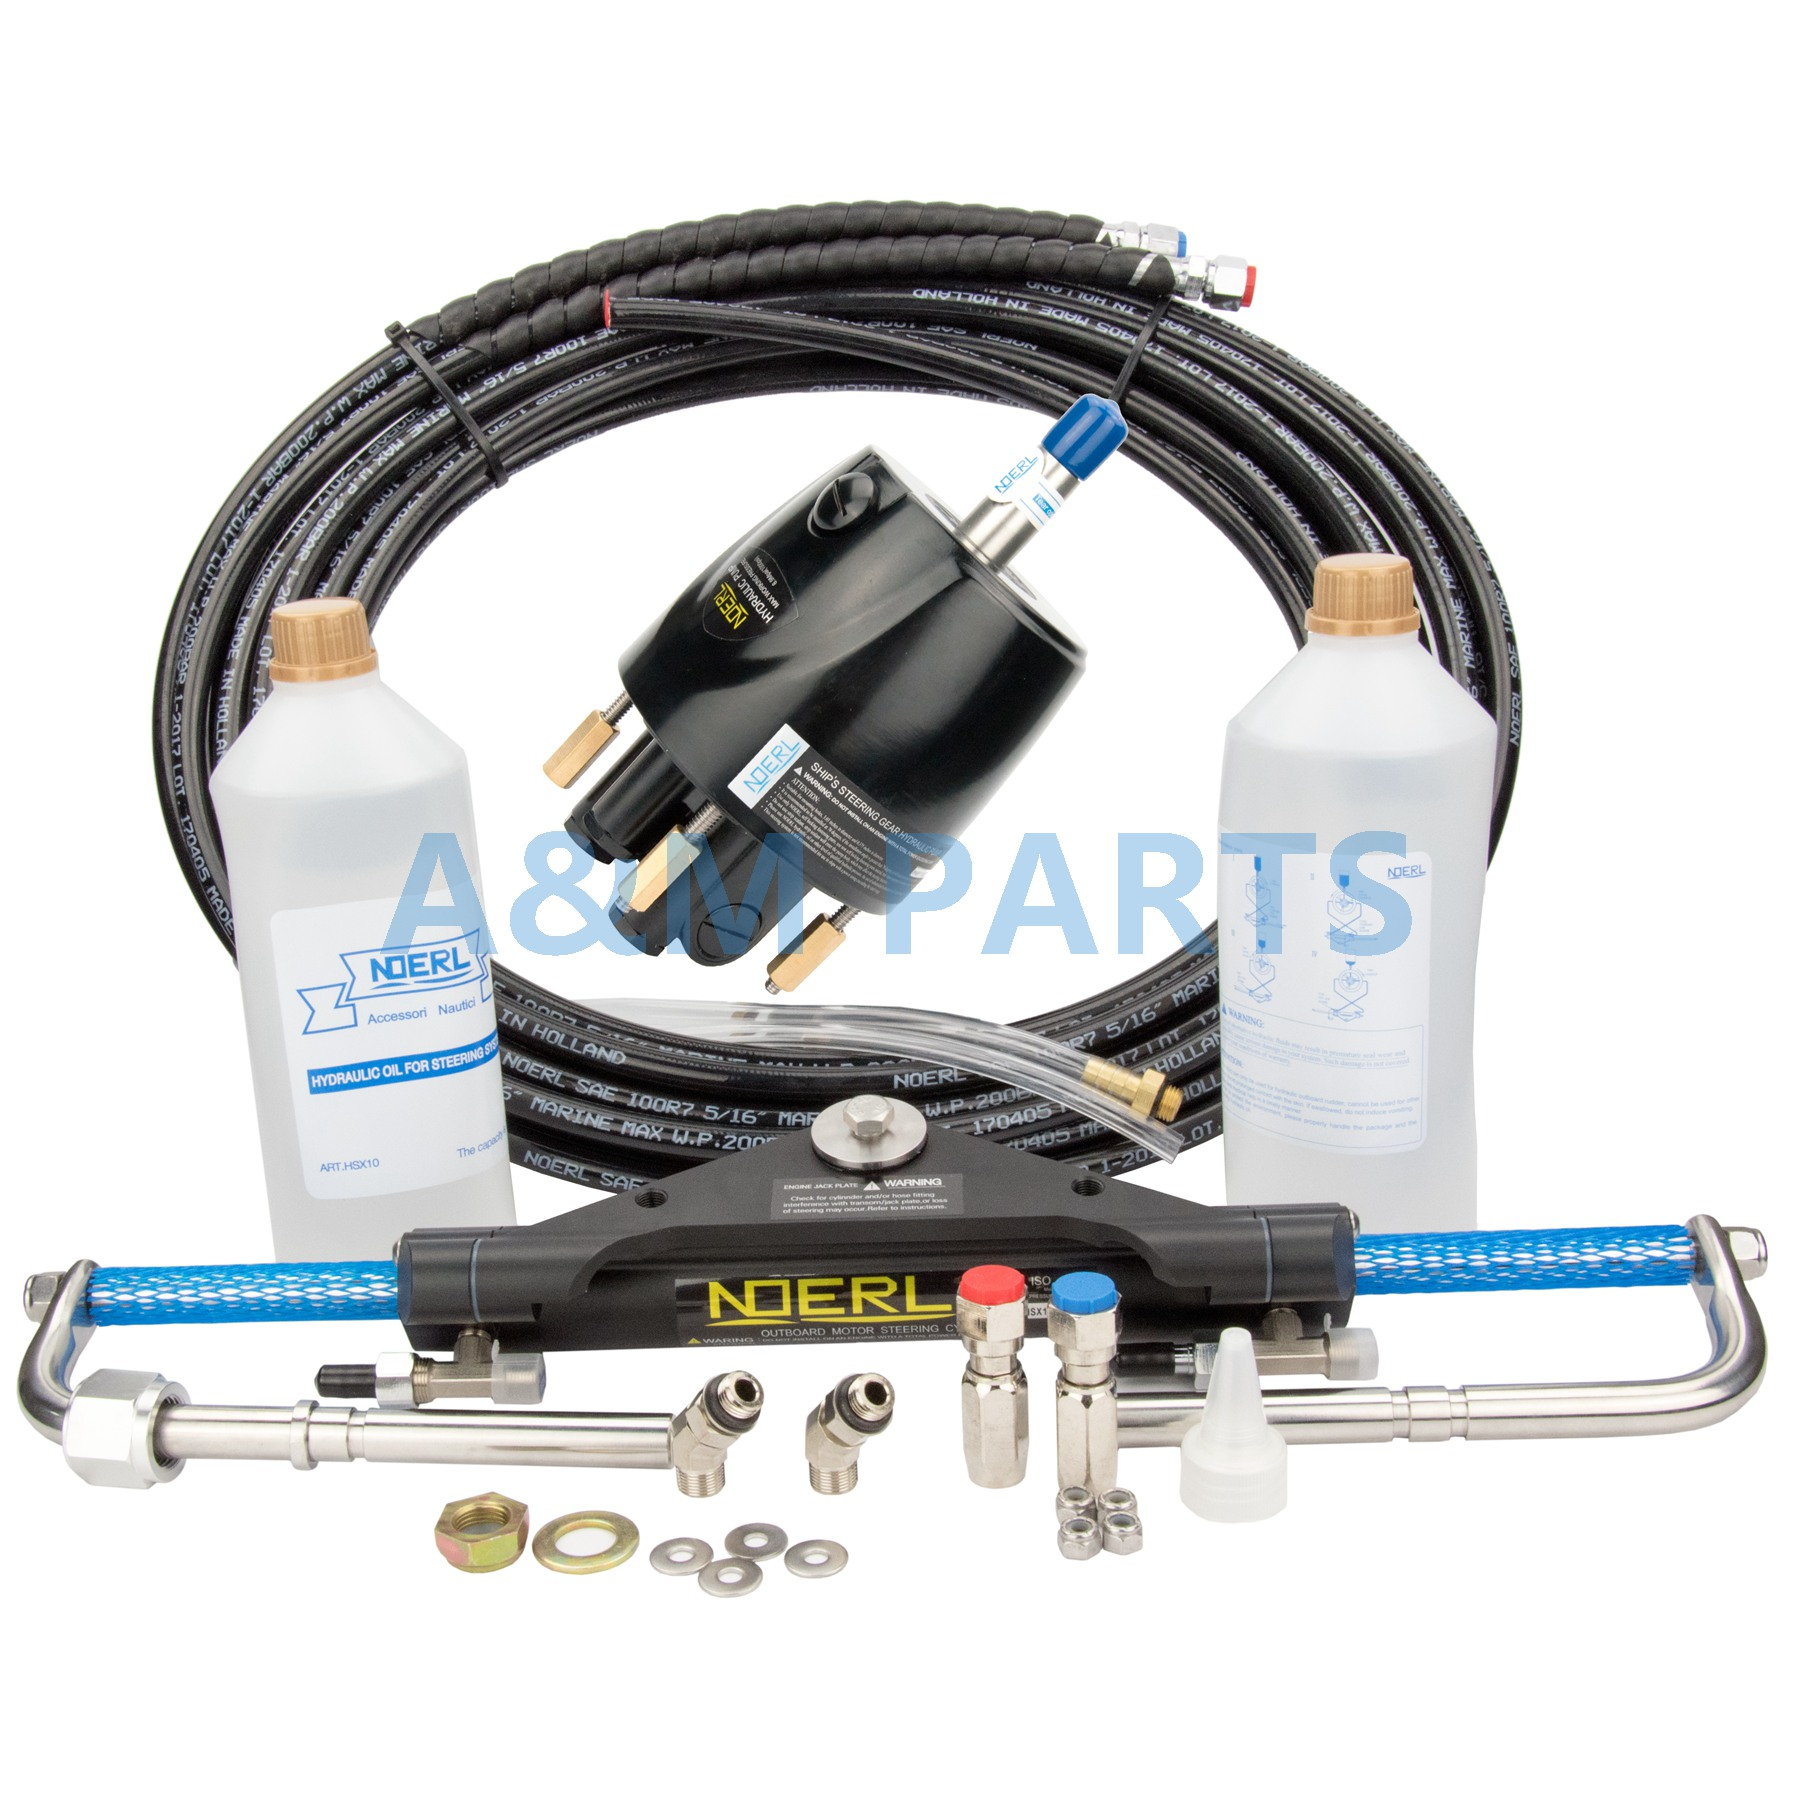 Boat Marine Hydraulic Outboard Steering System Kit Cylinder Helm 150HP-in  Marine Hardware from Automobiles & Motorcycles on Aliexpress.com | Alibaba  Group